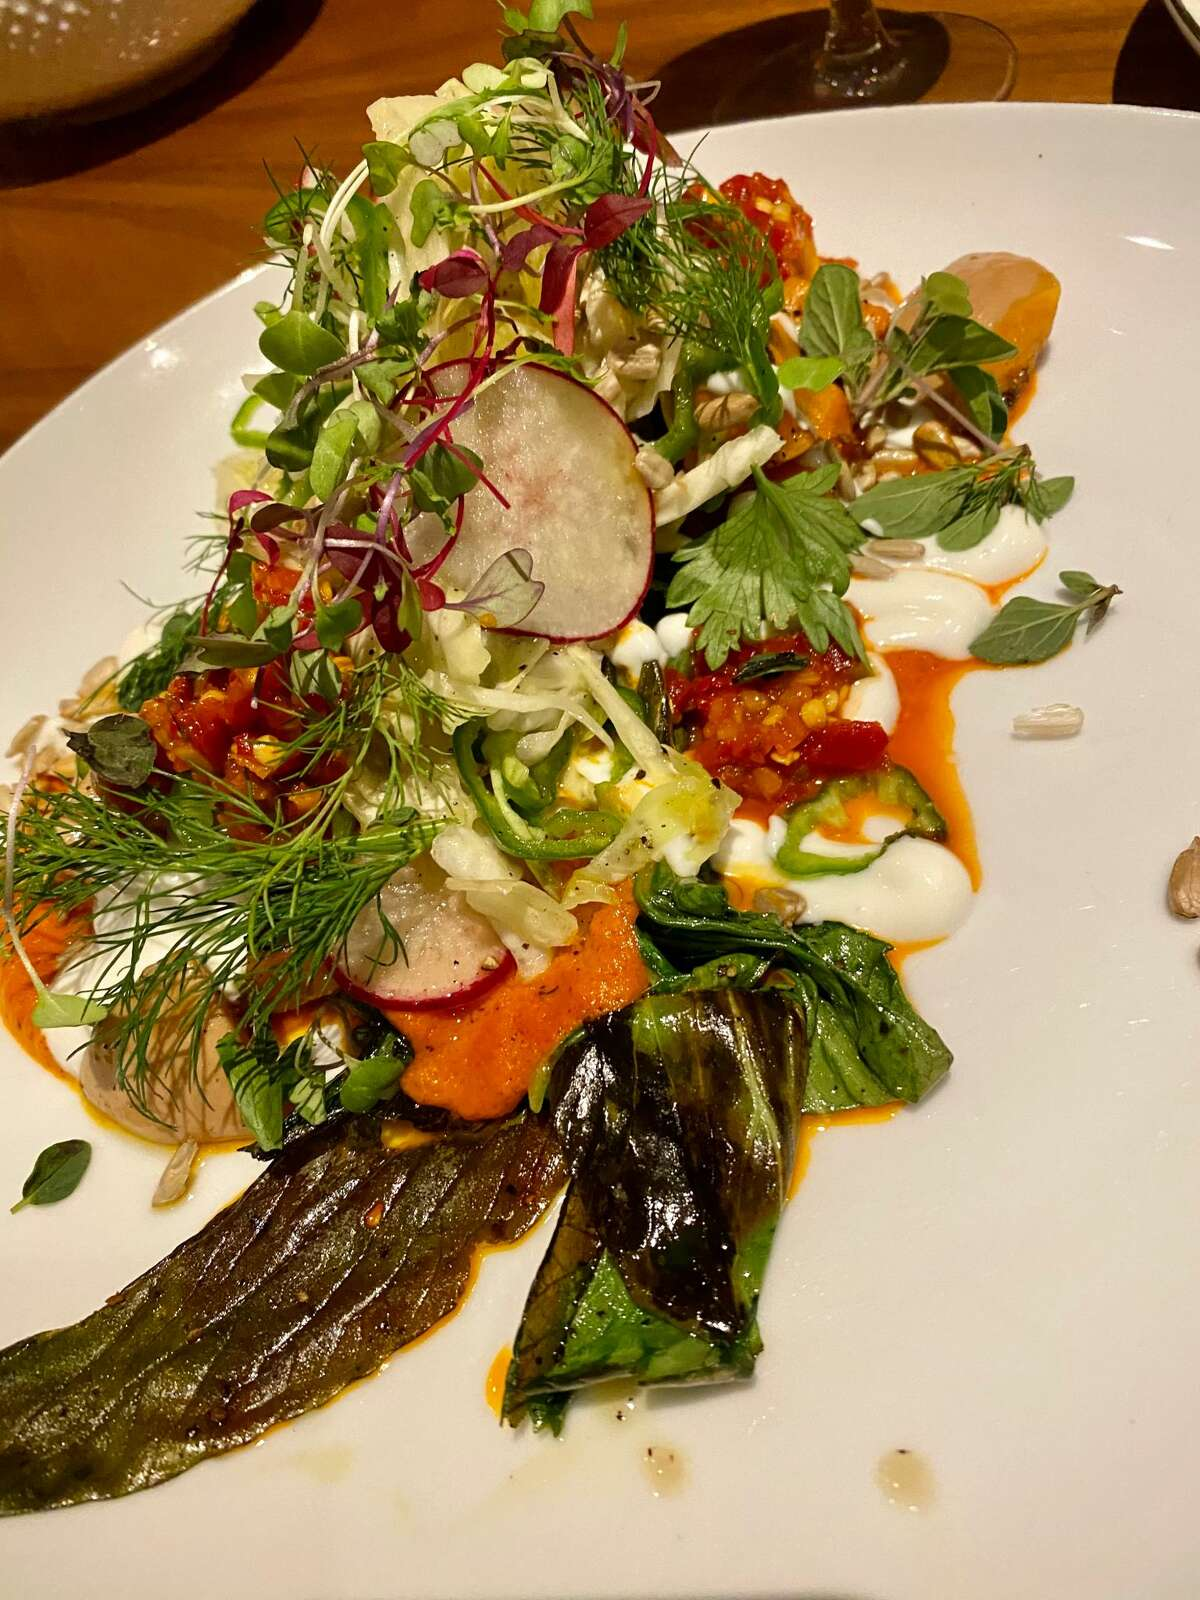 Fire-grilled bok choy with piquillo purée, sweet-pepper relish, slivered radishes and jalapenos at Local 111 in Philmont. (Susie Davidson Powell for the Times Union.)